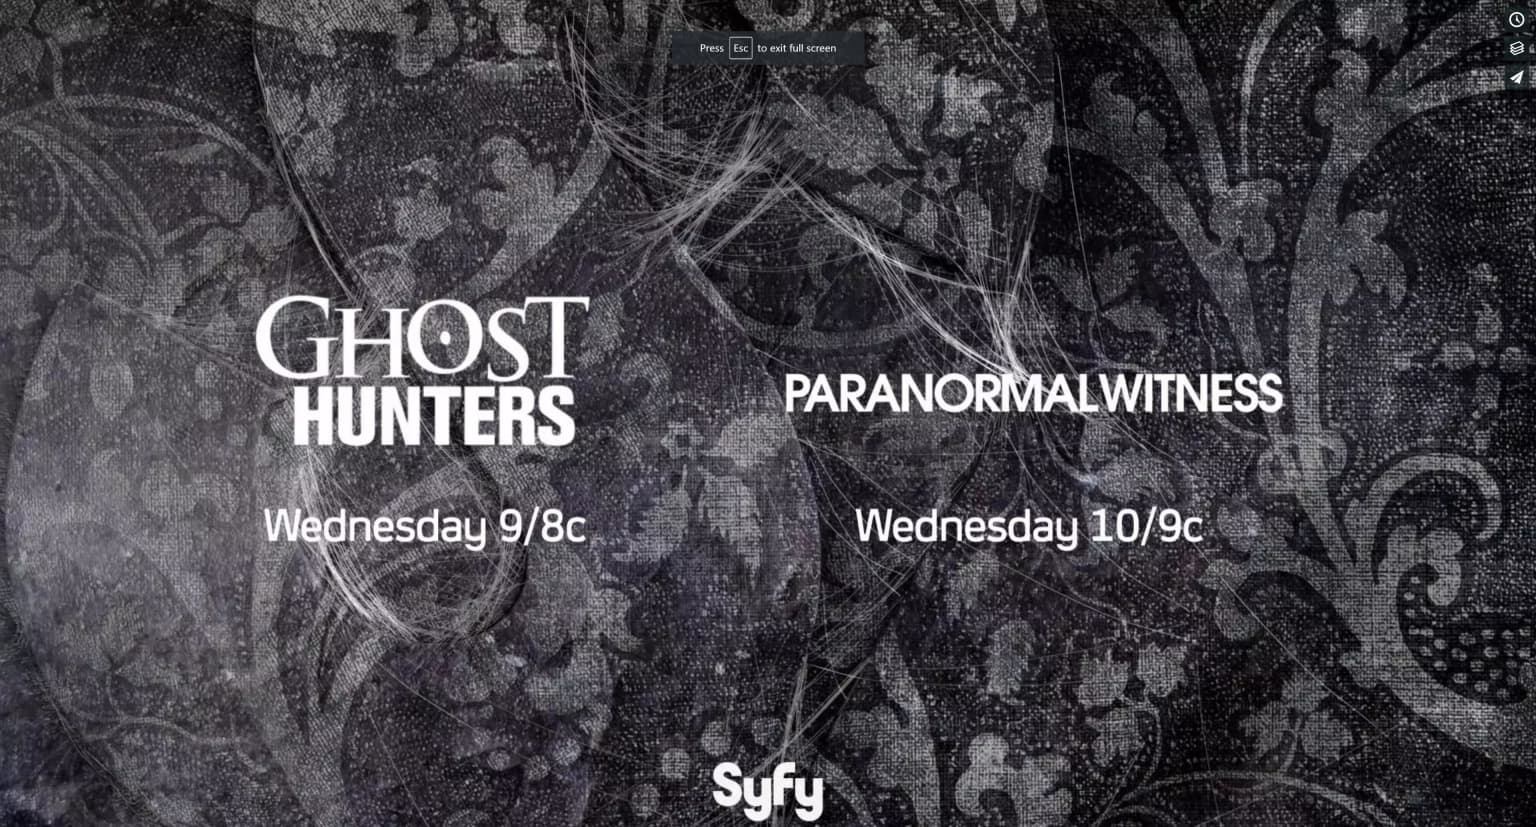 Syfy Crimson Peak / Ghost Hunters / Paranormal Witness Promo